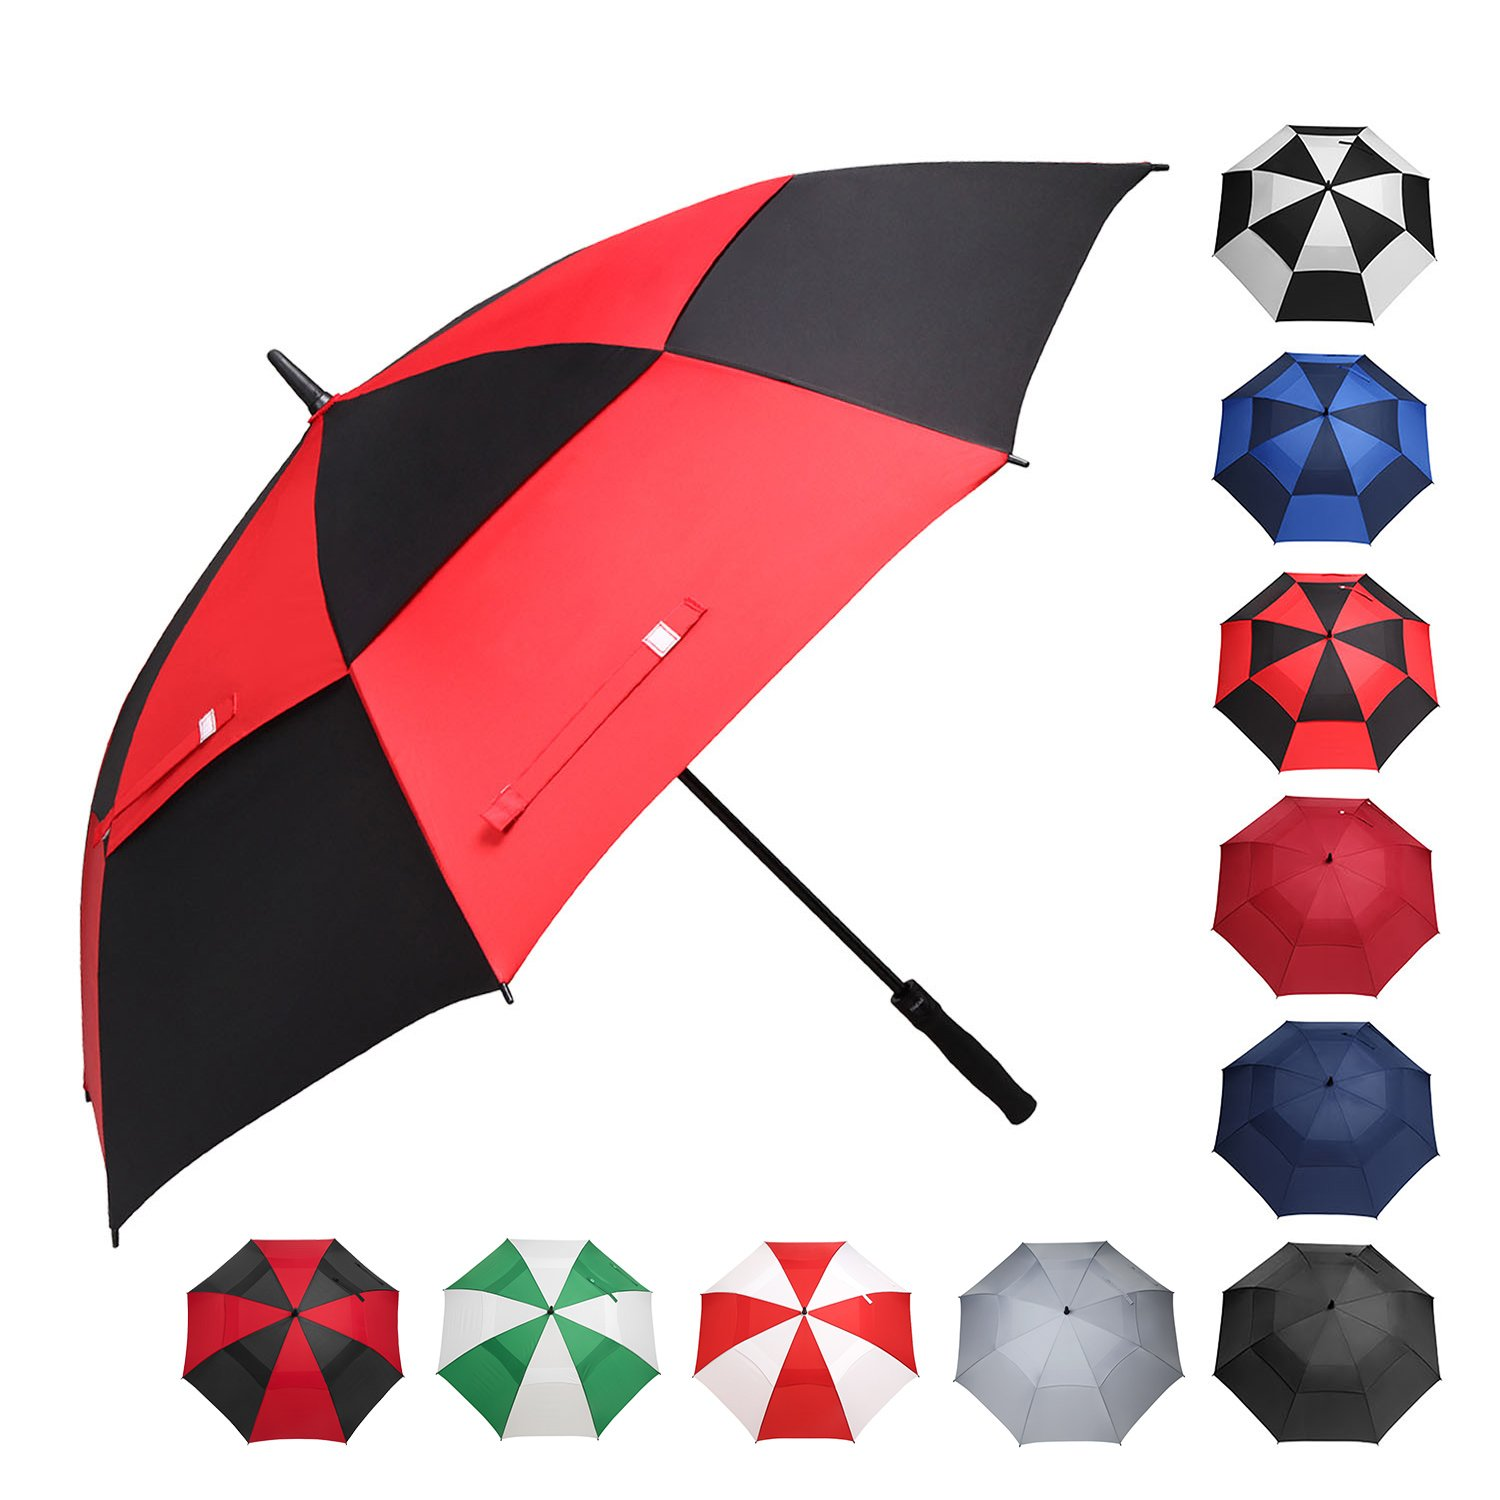 BAGAIL Golf Umbrella 68/62/58 Inch Large Oversize Double Canopy Vented Windproof Waterproof Automatic Open Stick Umbrellas for Men and Women (Black/Red 62 Inch)